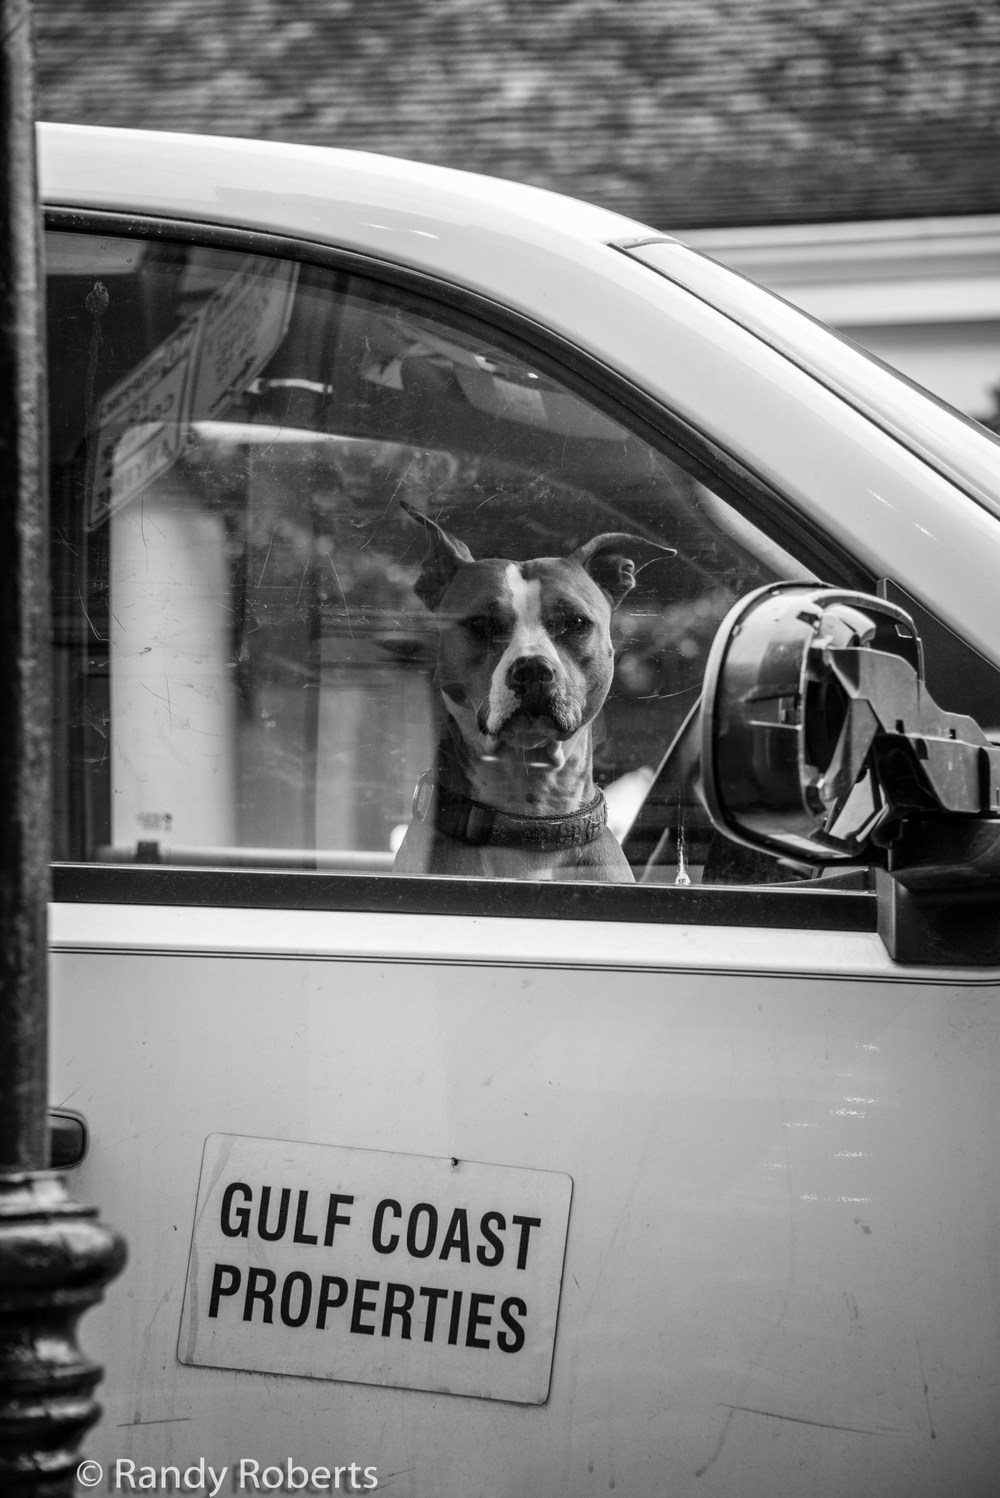 The Dog in the Car